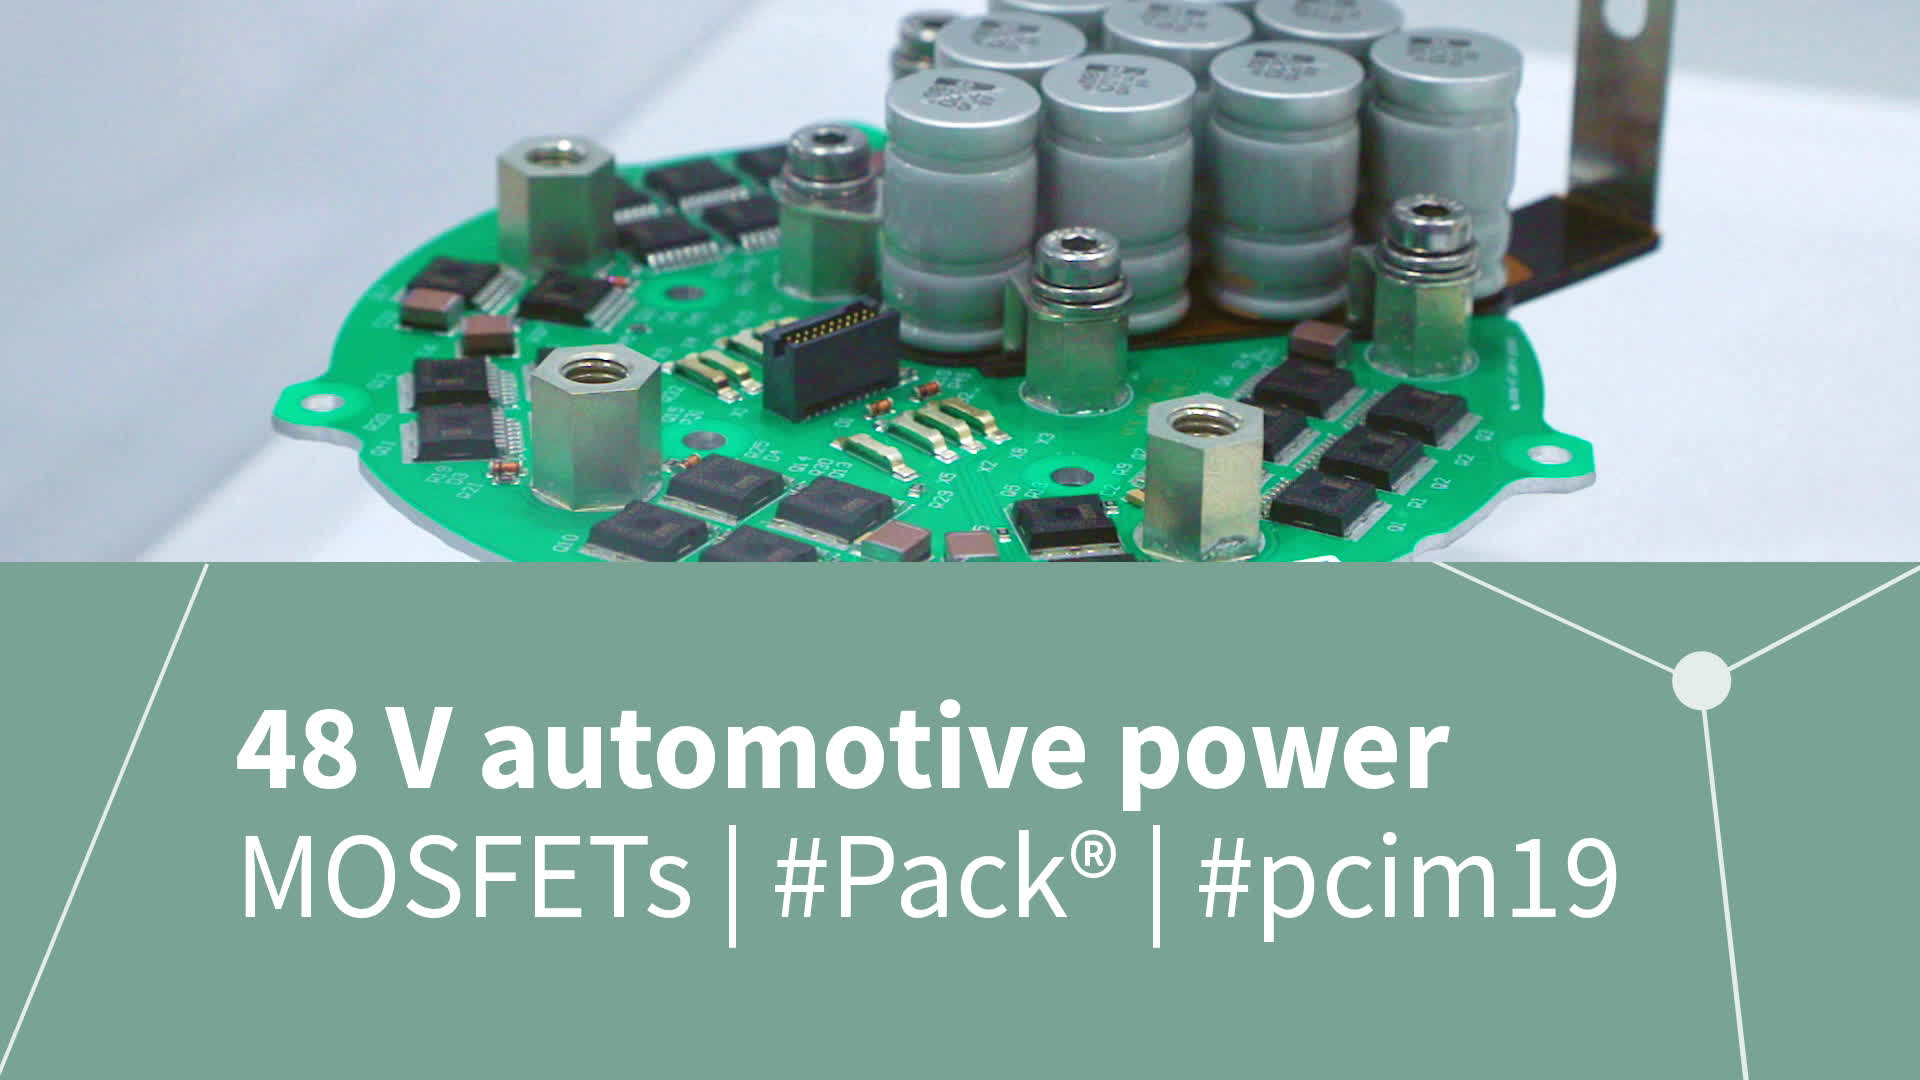 48 V automotive power MOSFETs solutions